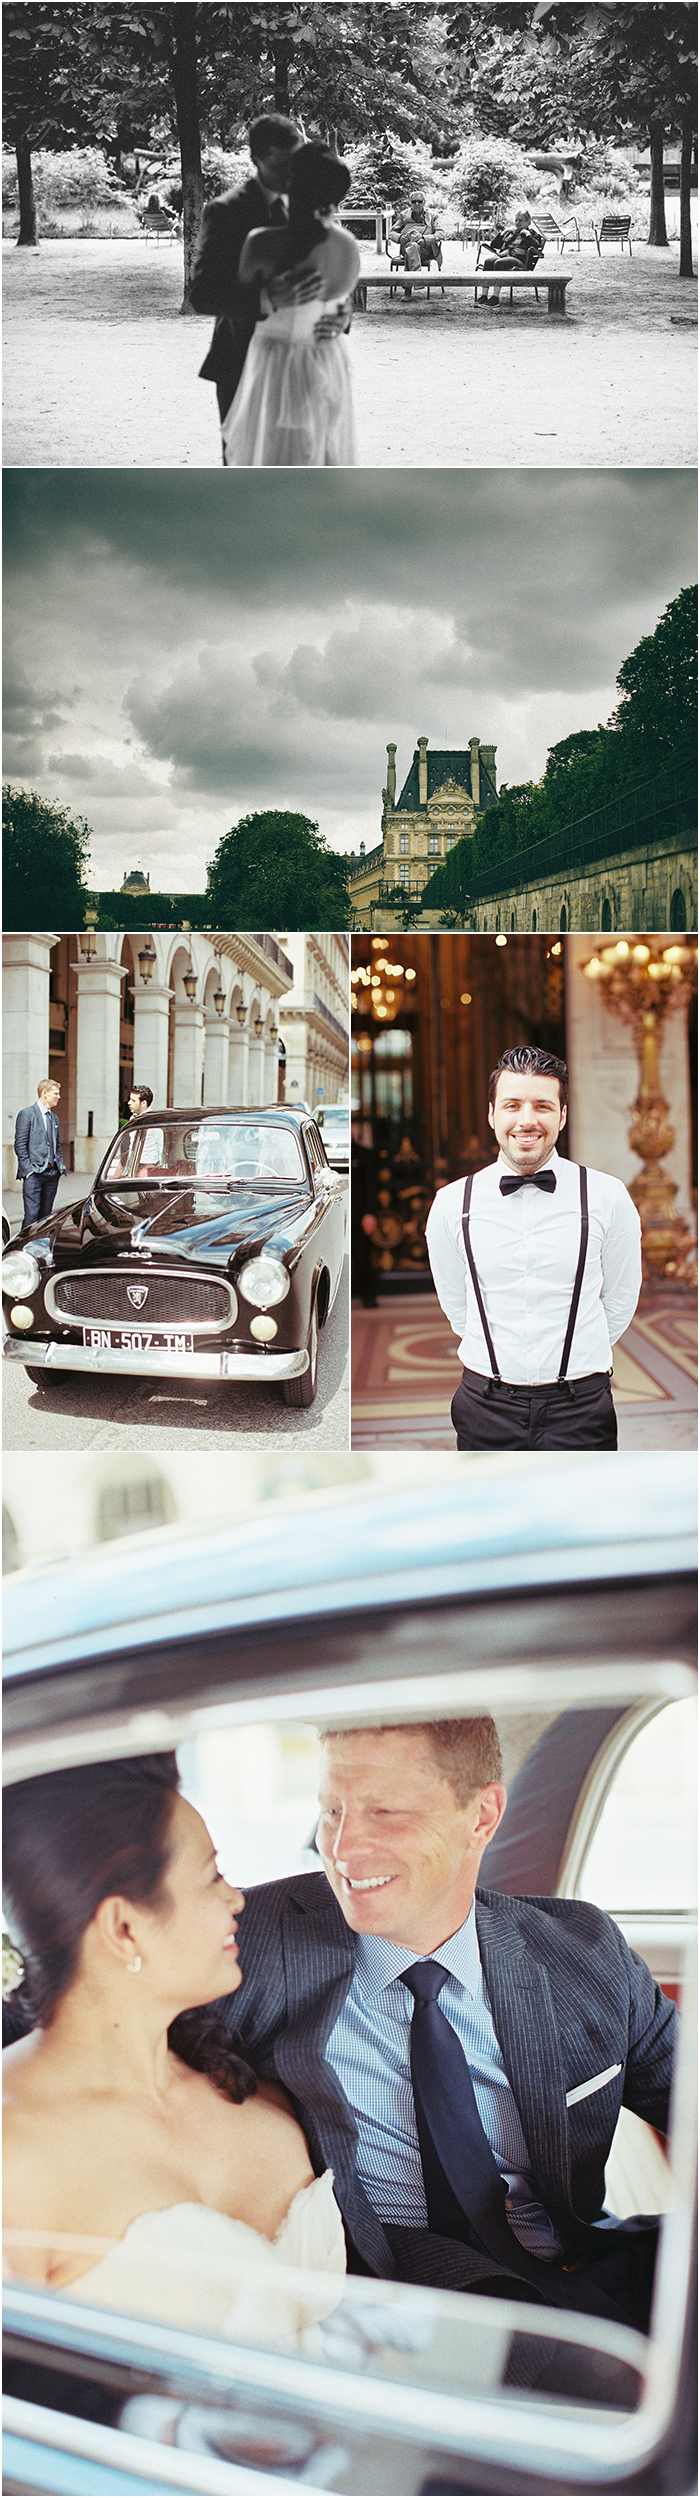 parisweddingphotographer03